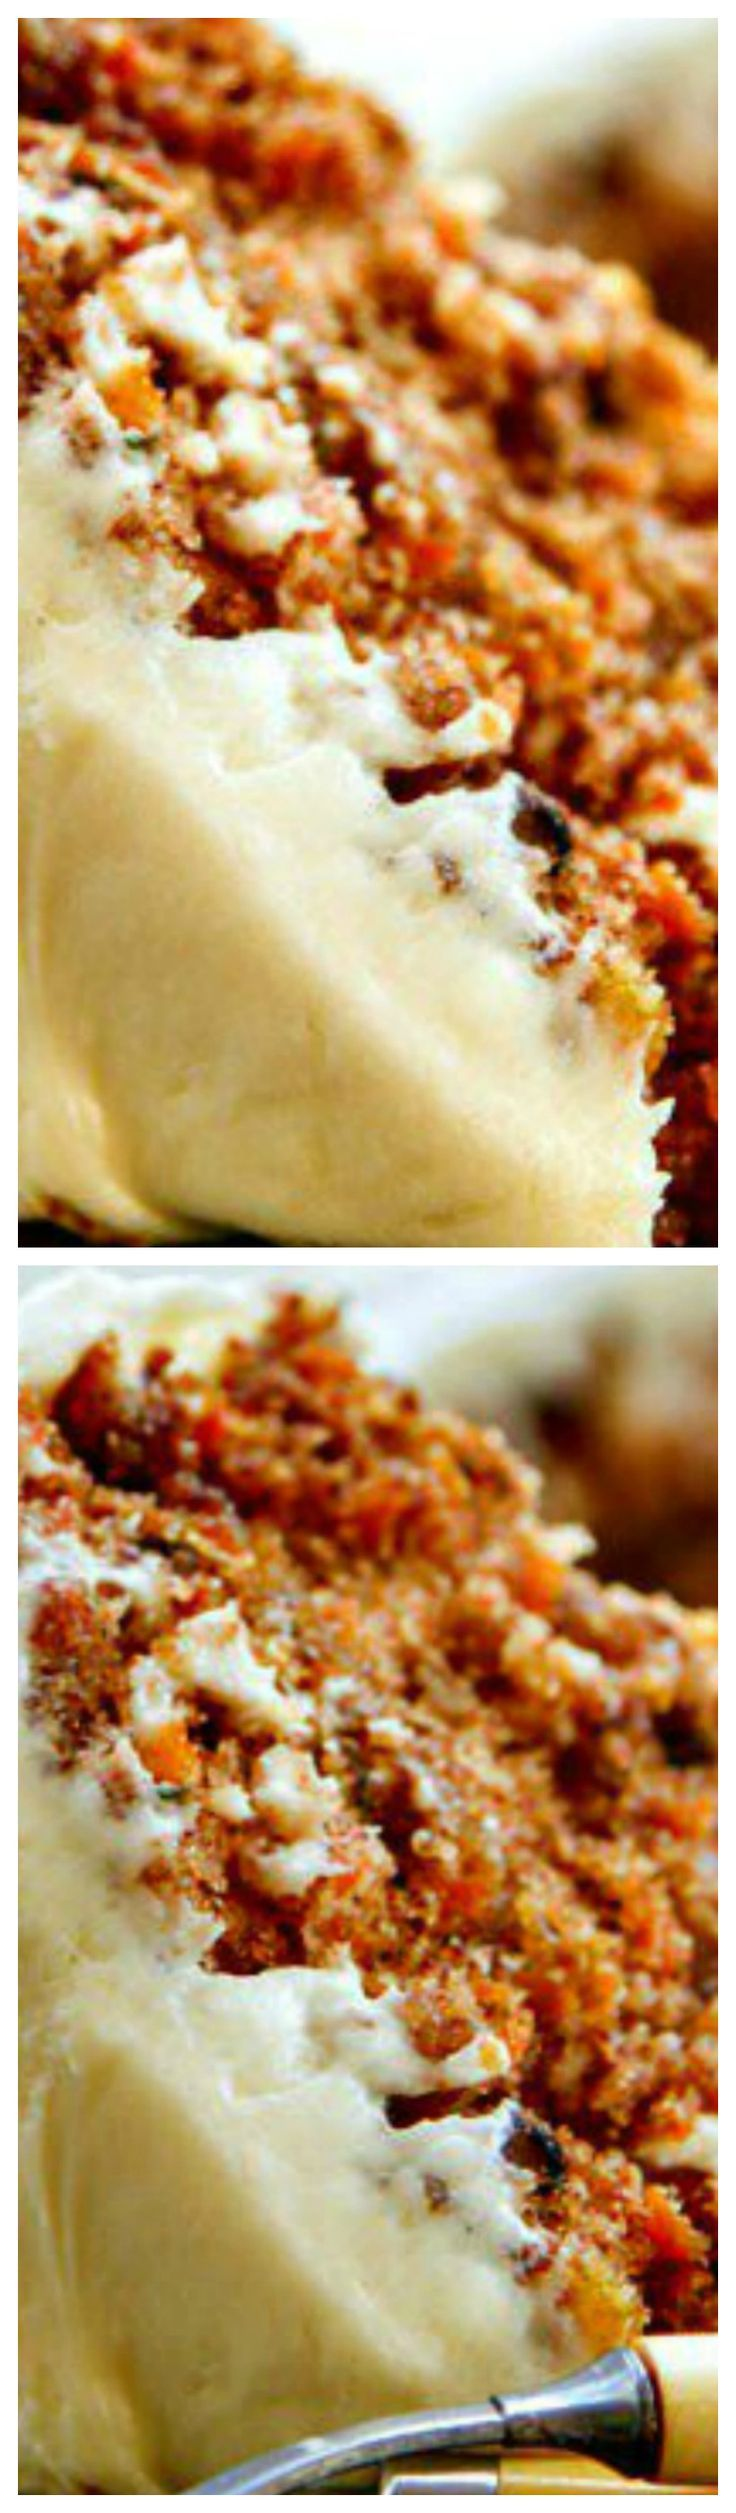 The BEST Carrot Cake recipe I have ever found ~ A buttermilk glaze seeps into the warm cake layers making it extra moist. Then a delicious cream cheese frosting is added to bring all the flavors together. It's even BETTER the next day!